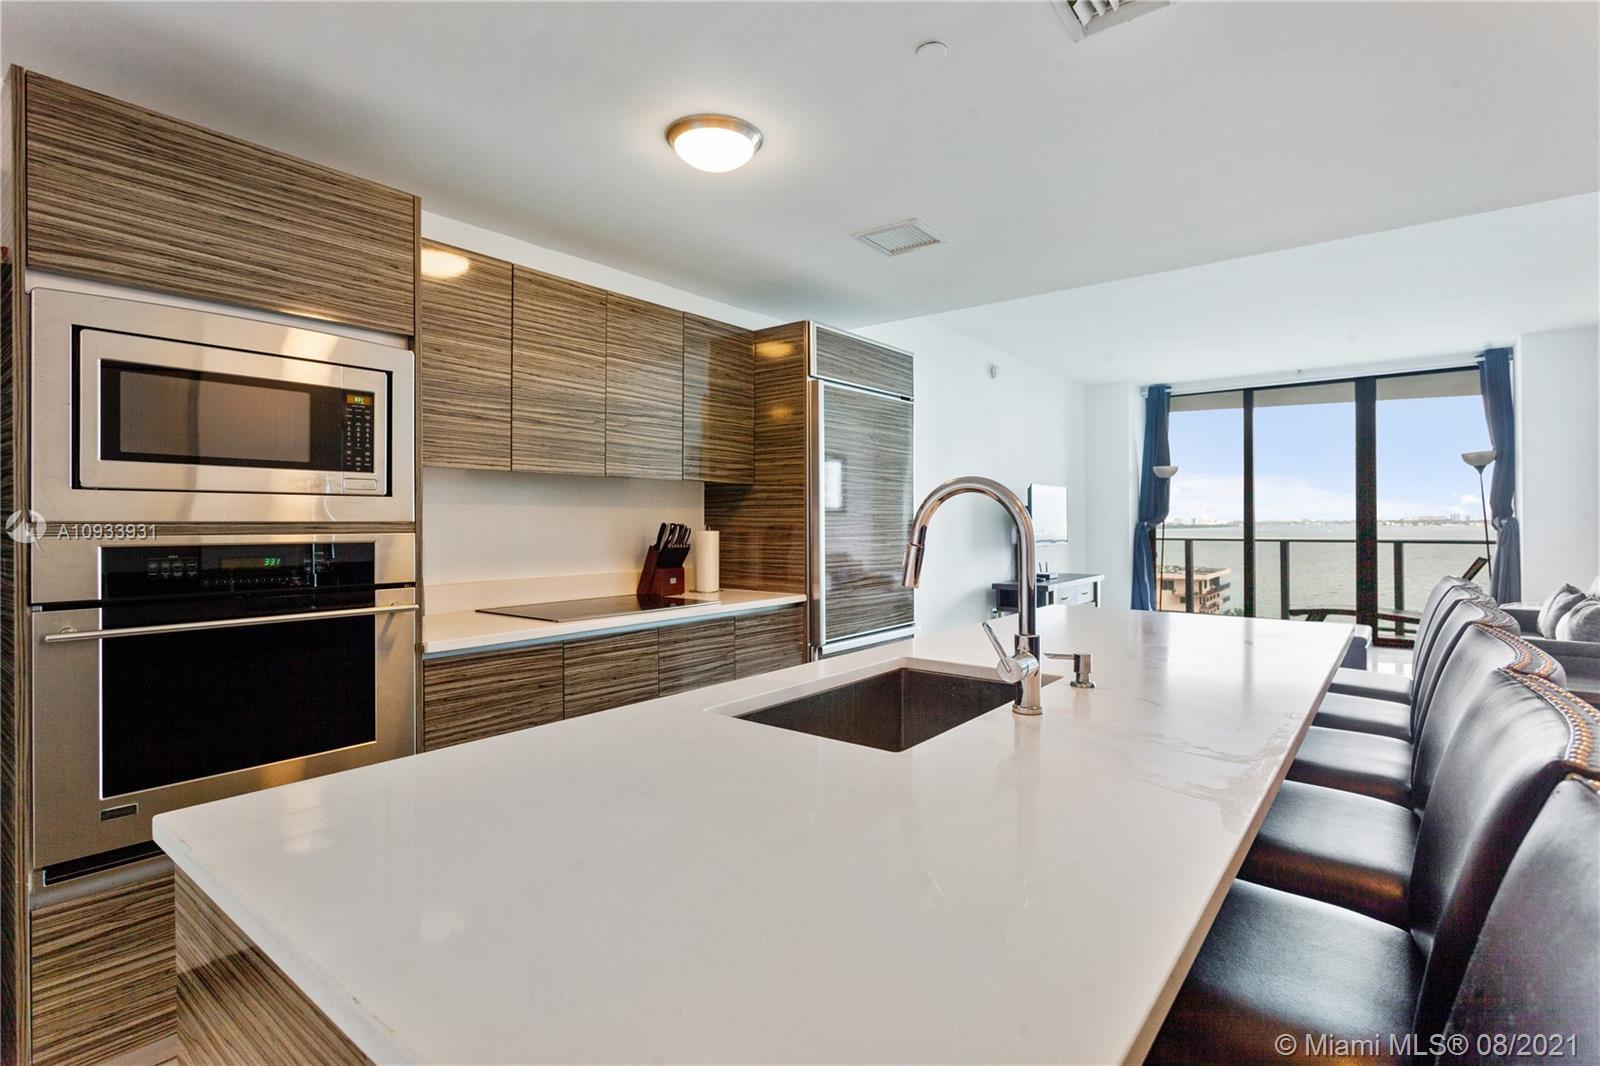 Spectacular Water Views from every angle of this Freshly Painted One Bedroom & 1.5 Bathroom Condo at